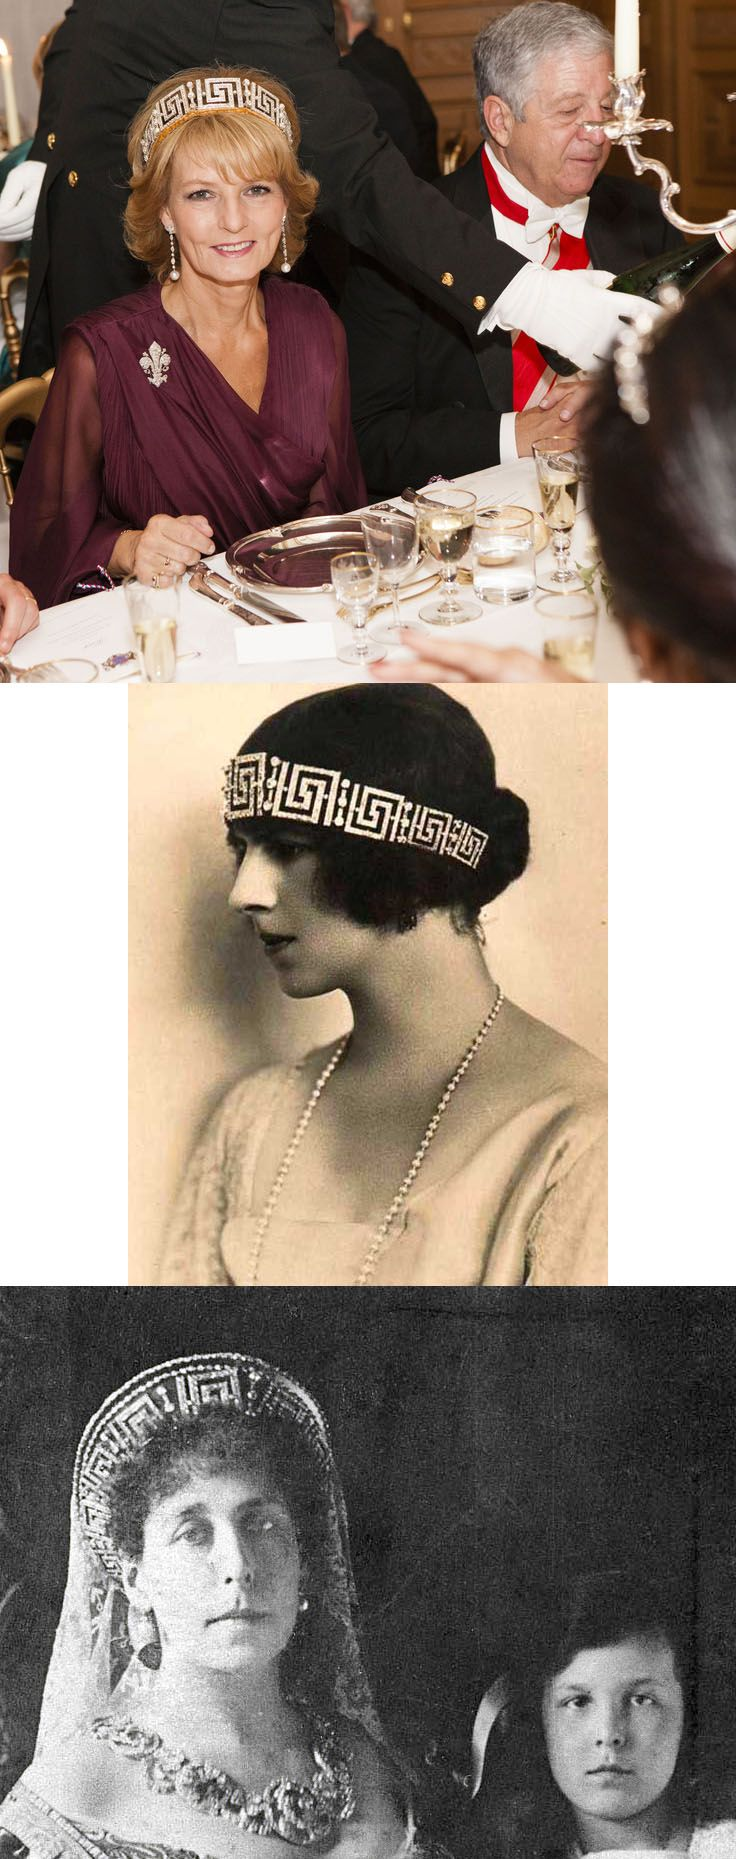 The Romanian Greek Key Tiara. Princess Victoria became Grand Duchess Viktoria Feodorovna (top) after her second marriage to Grand Duke Cyril Vladimirovich of Russia in 1905. This tiara is said that he presented her it. In exile after the revolution, she sold her tiara to her sister Queen of Romania. Queen was subsequently presented to Helen (middle), the bride of her son Carol in 1921. Bottom: Princess Margareta of Romania.